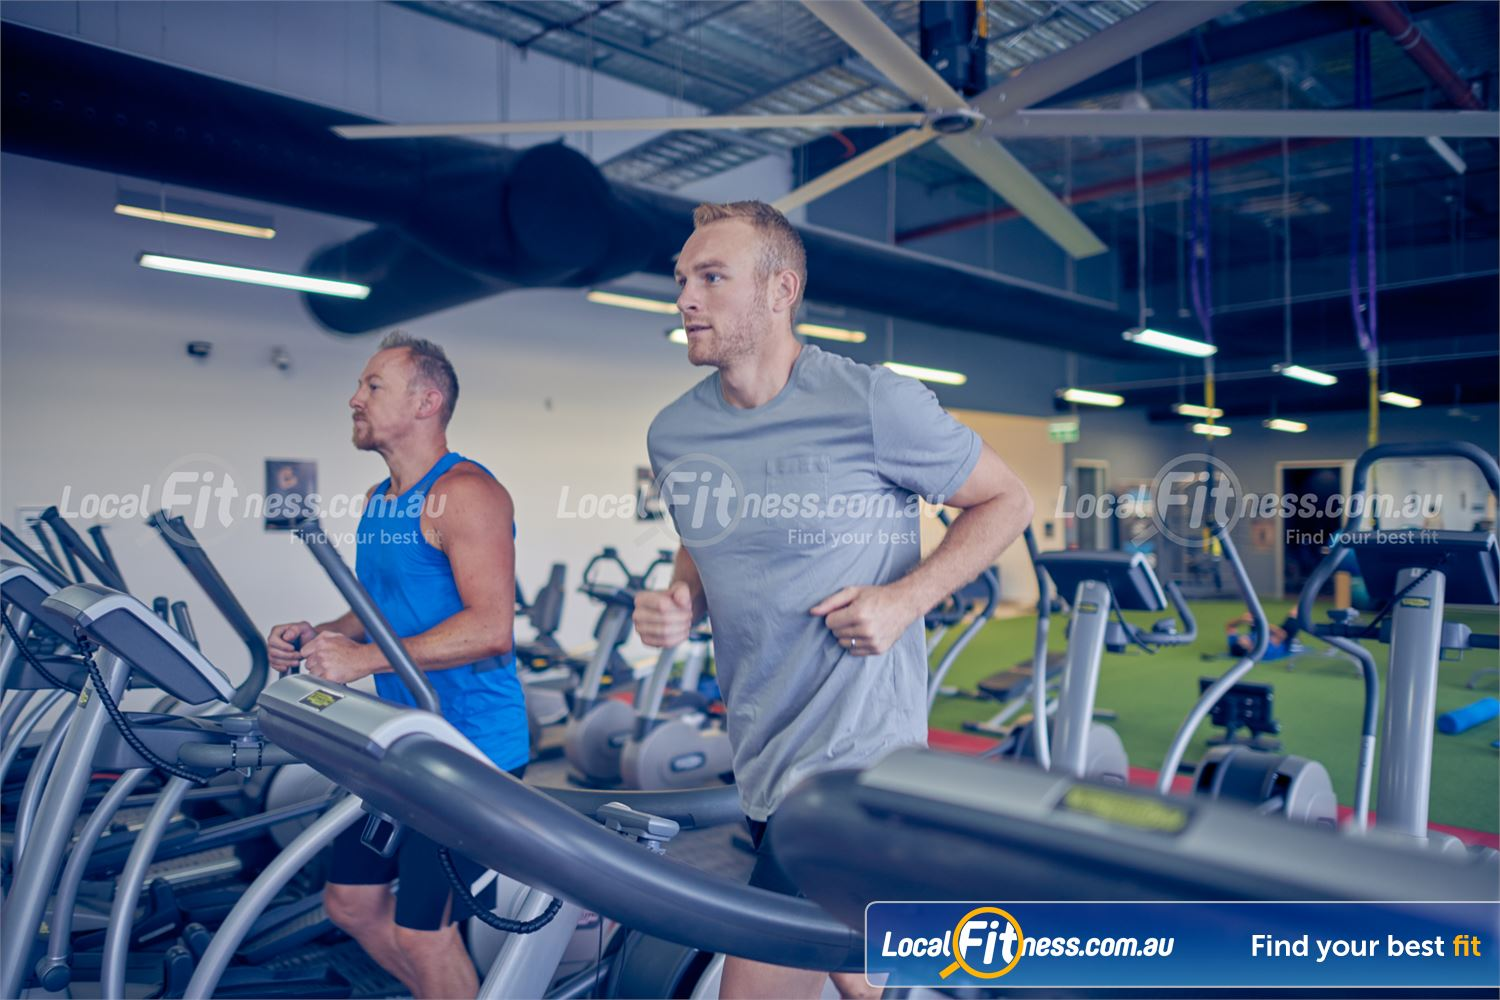 Element Fitness Health Club Nunawading Do a cardio workout when it suits you with 24/7 Nunawading gym access.